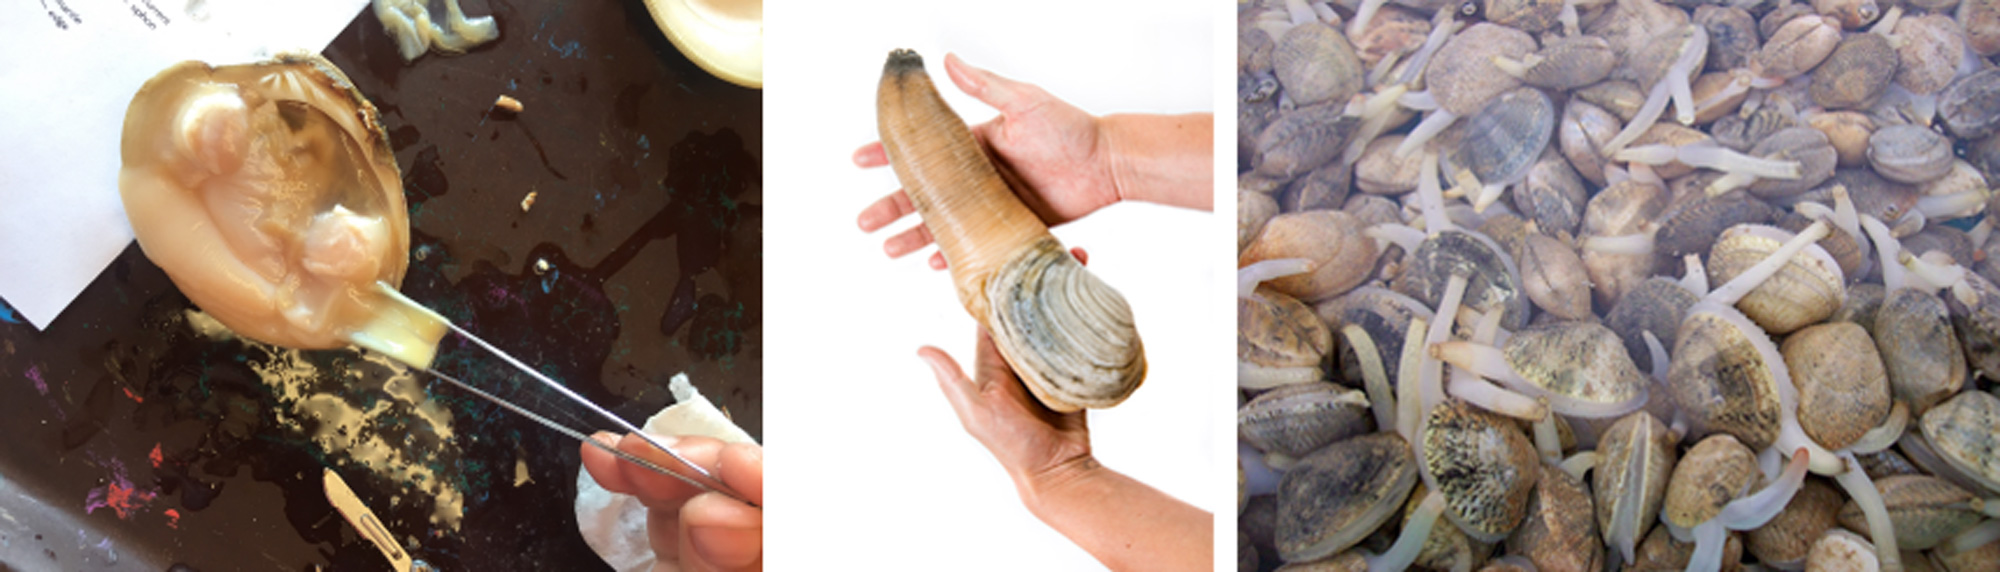 Image showing three photographs of siphons in various bivalves.